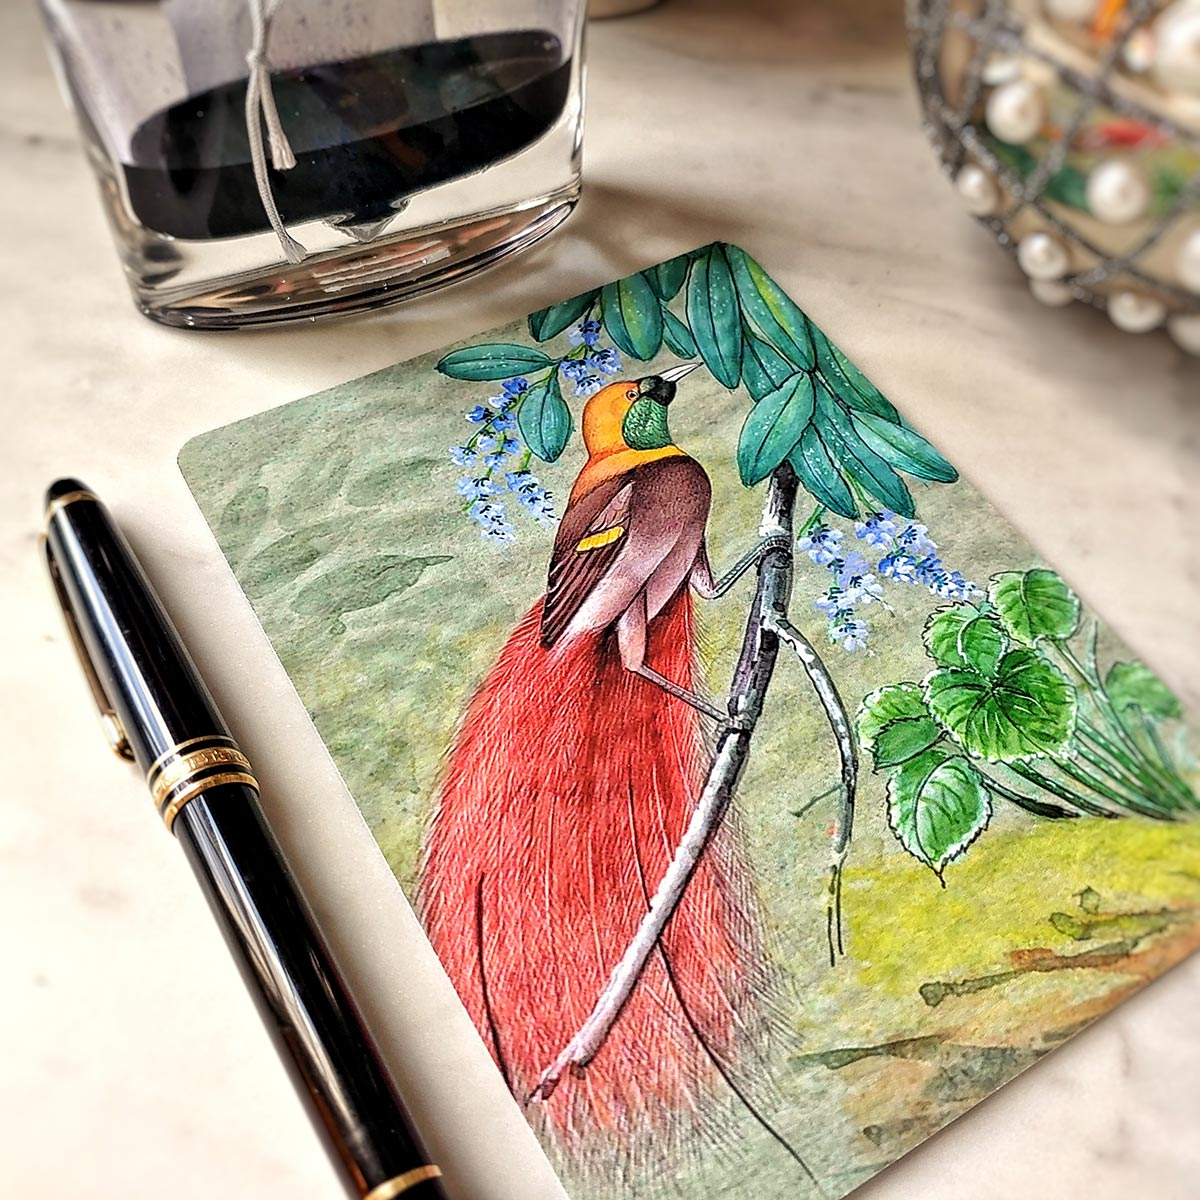 Mr. Ps Birds of India fine note cards with fountain pen and bottle of ink beside it.